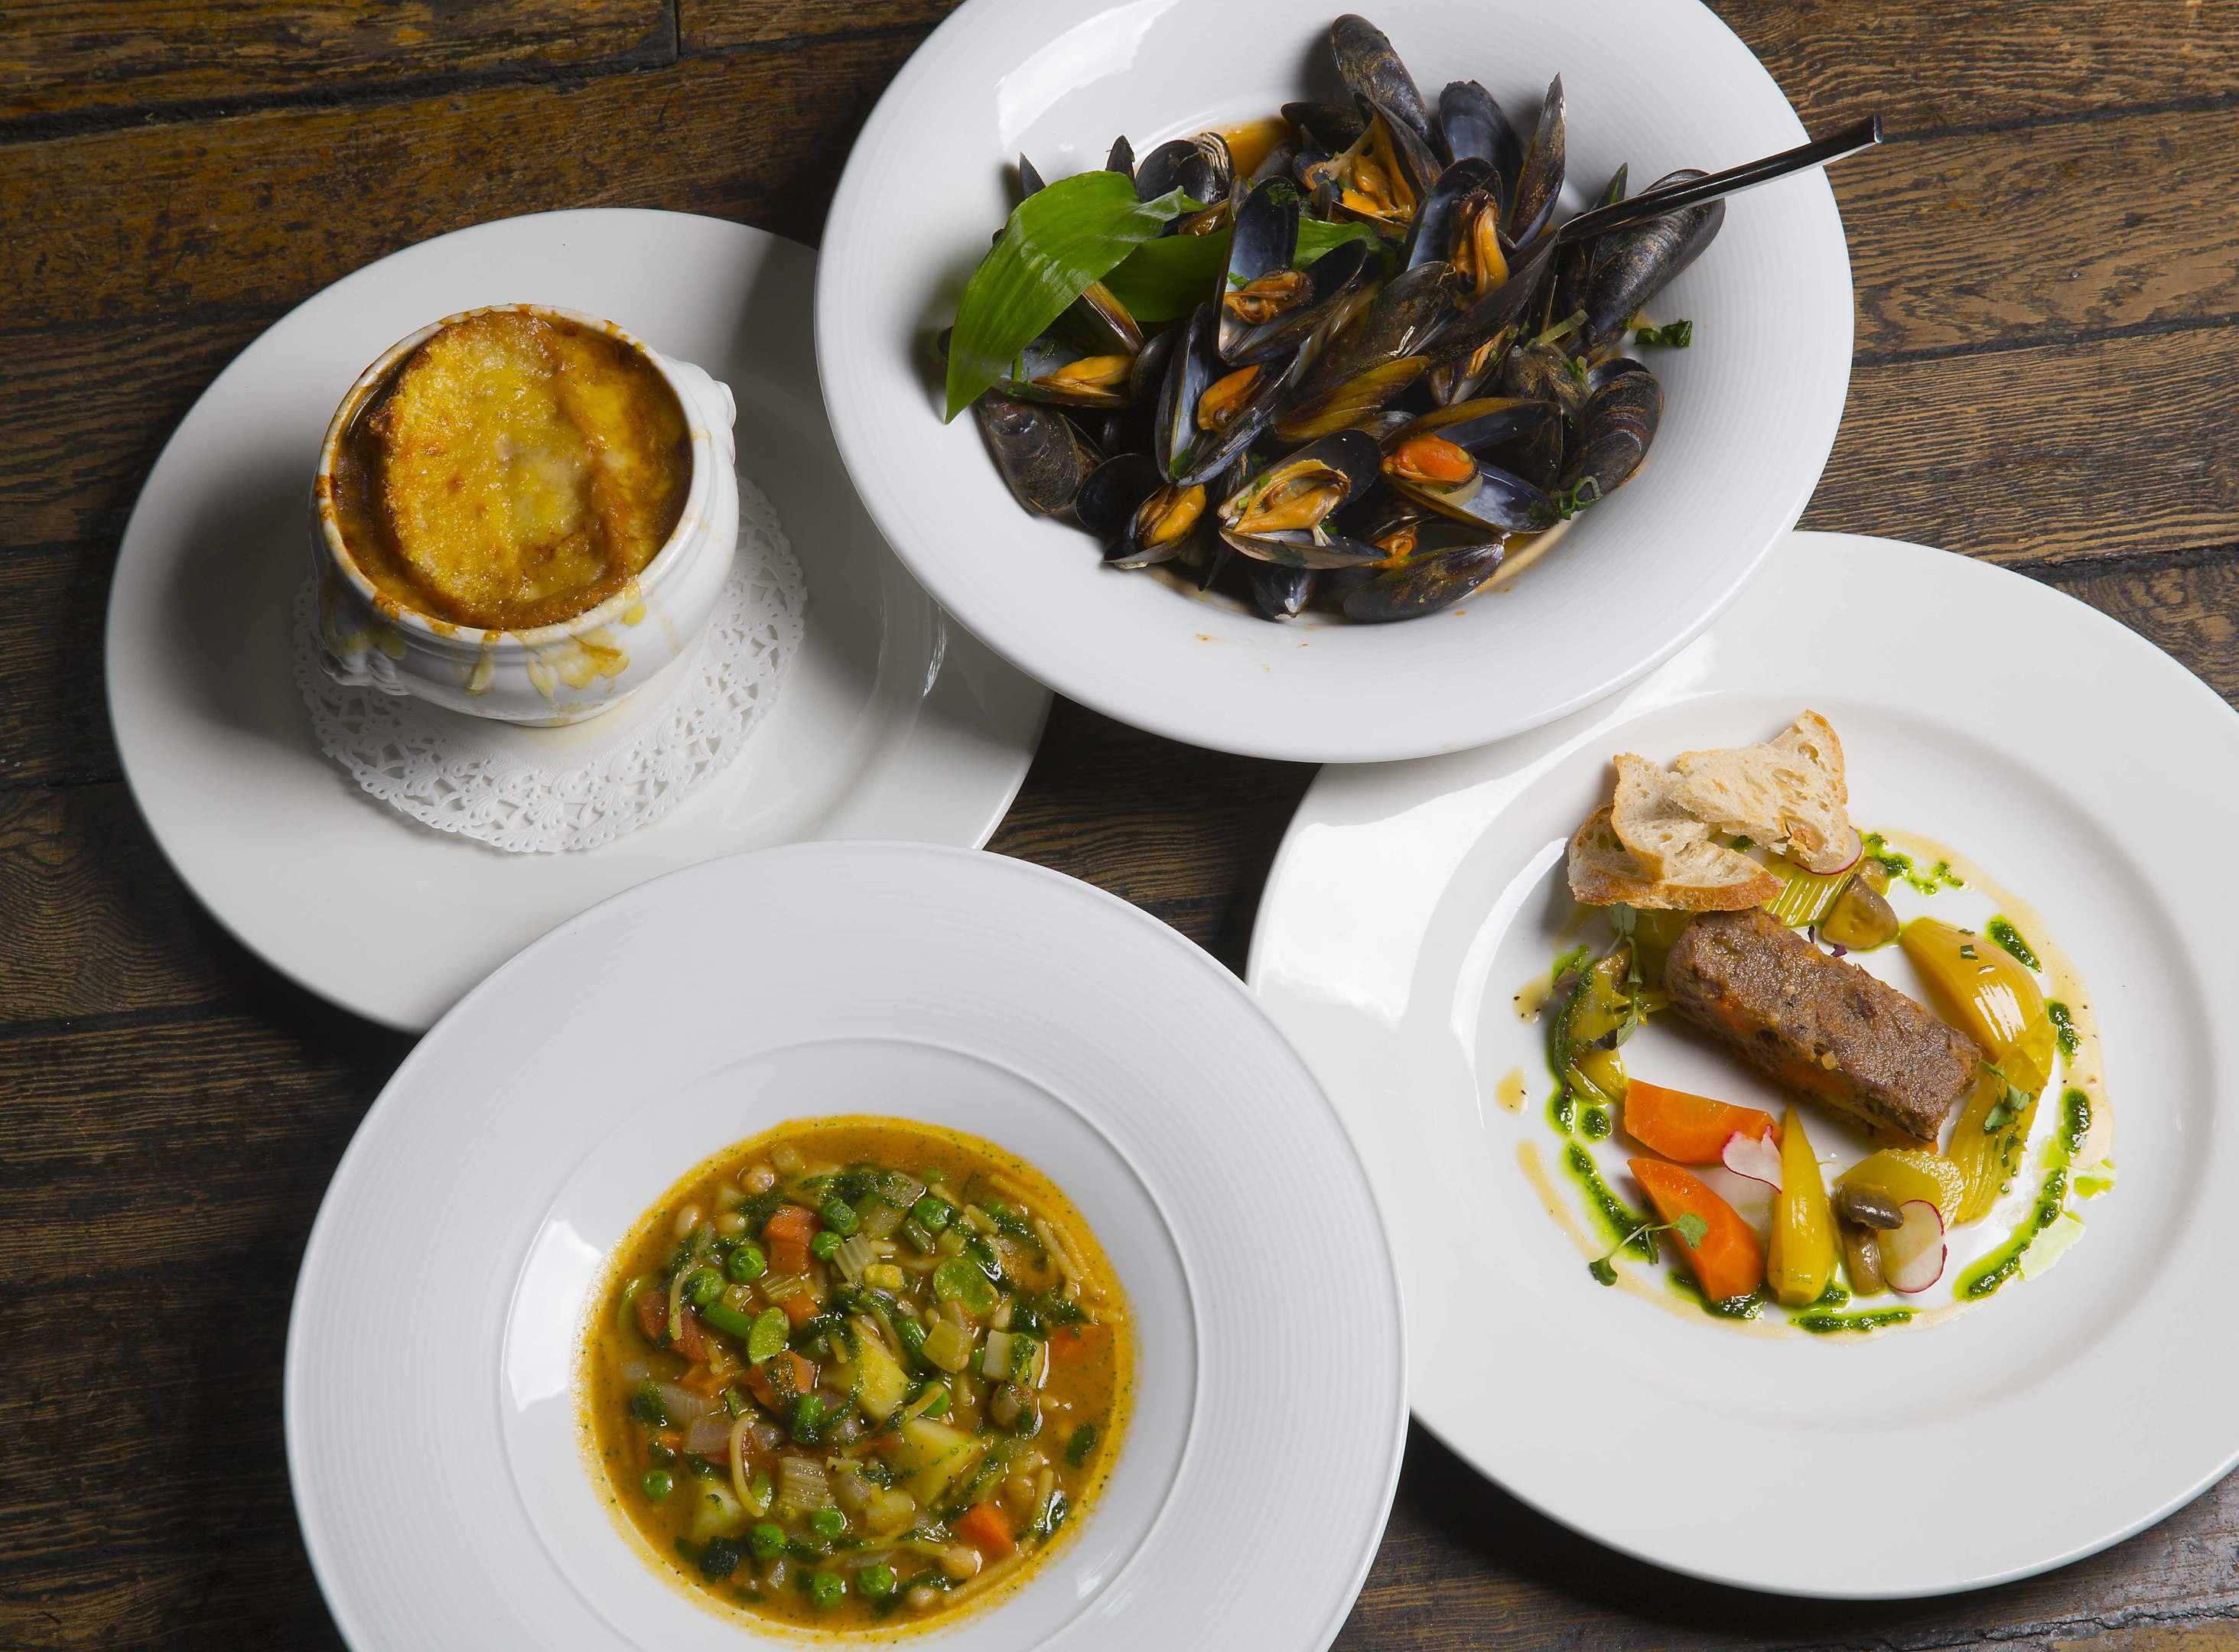 Items from the Cafe Boheme menu laid on during Aberdeen Restaurant Week in February 2018